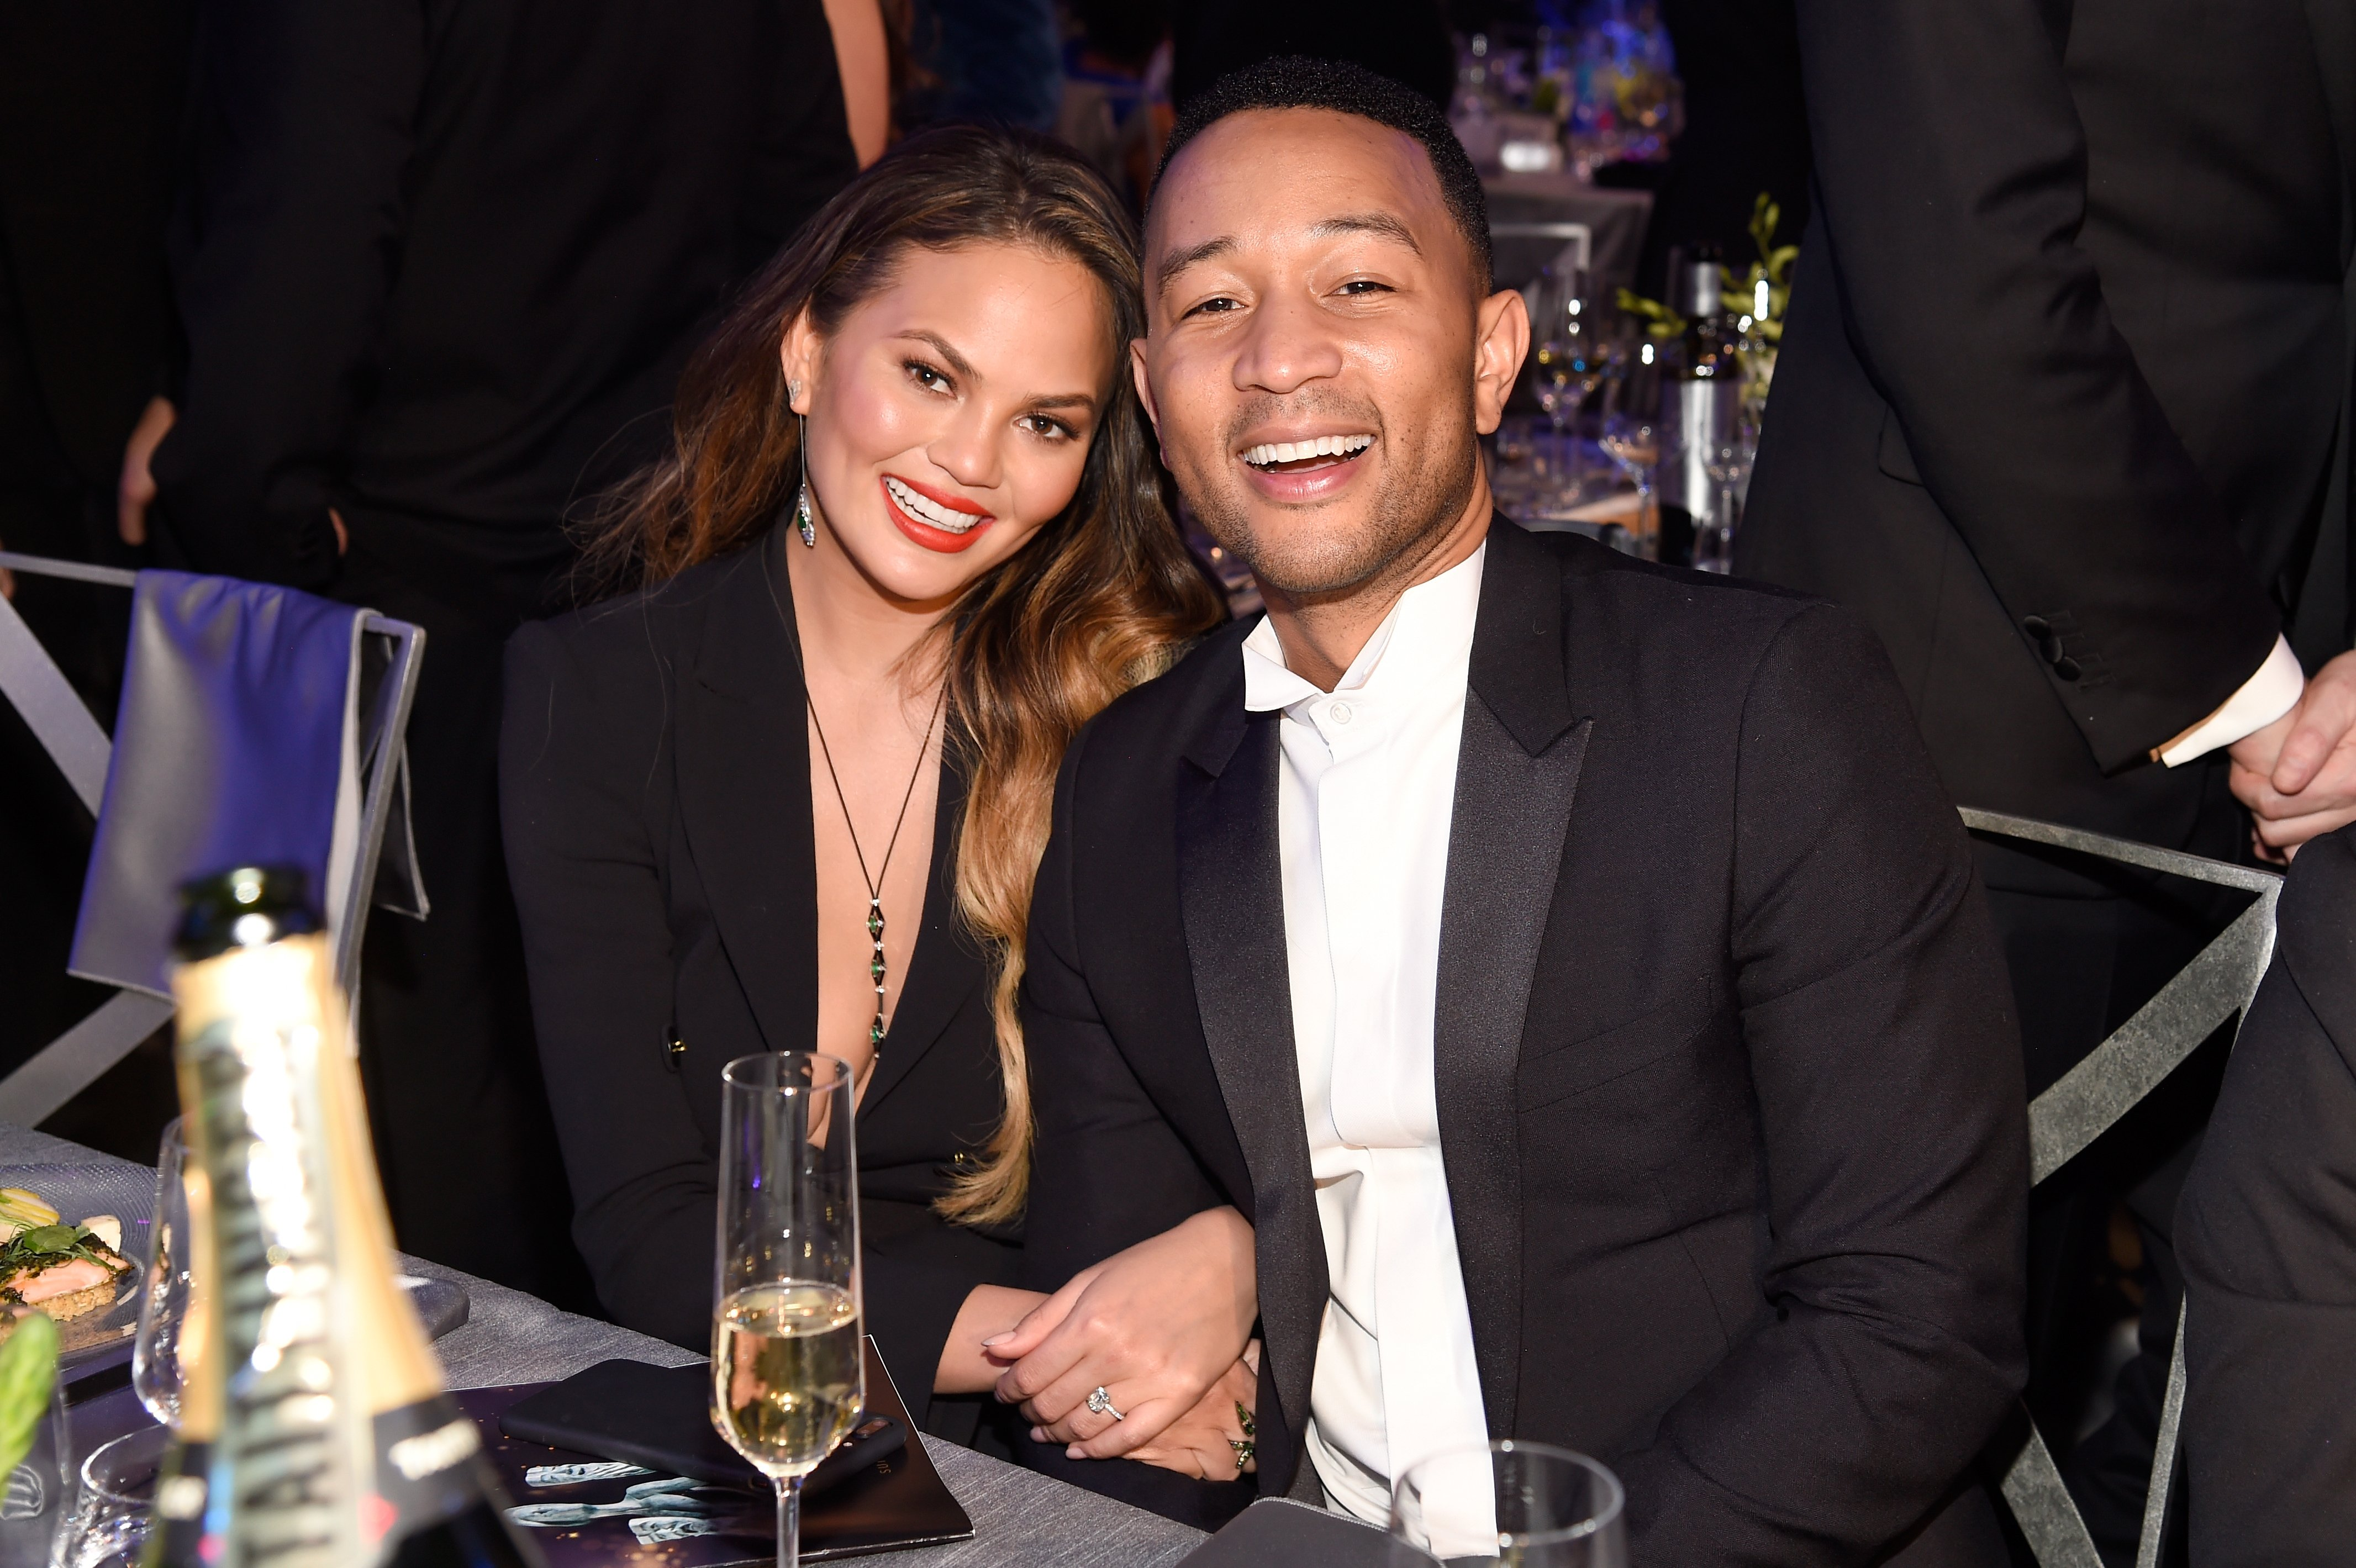 Chrissy Teigen and John Legend during The 23rd Annual Screen Actors Guild Awards  on January 29, 2017 in Los Angeles, California.   Source: Getty Images